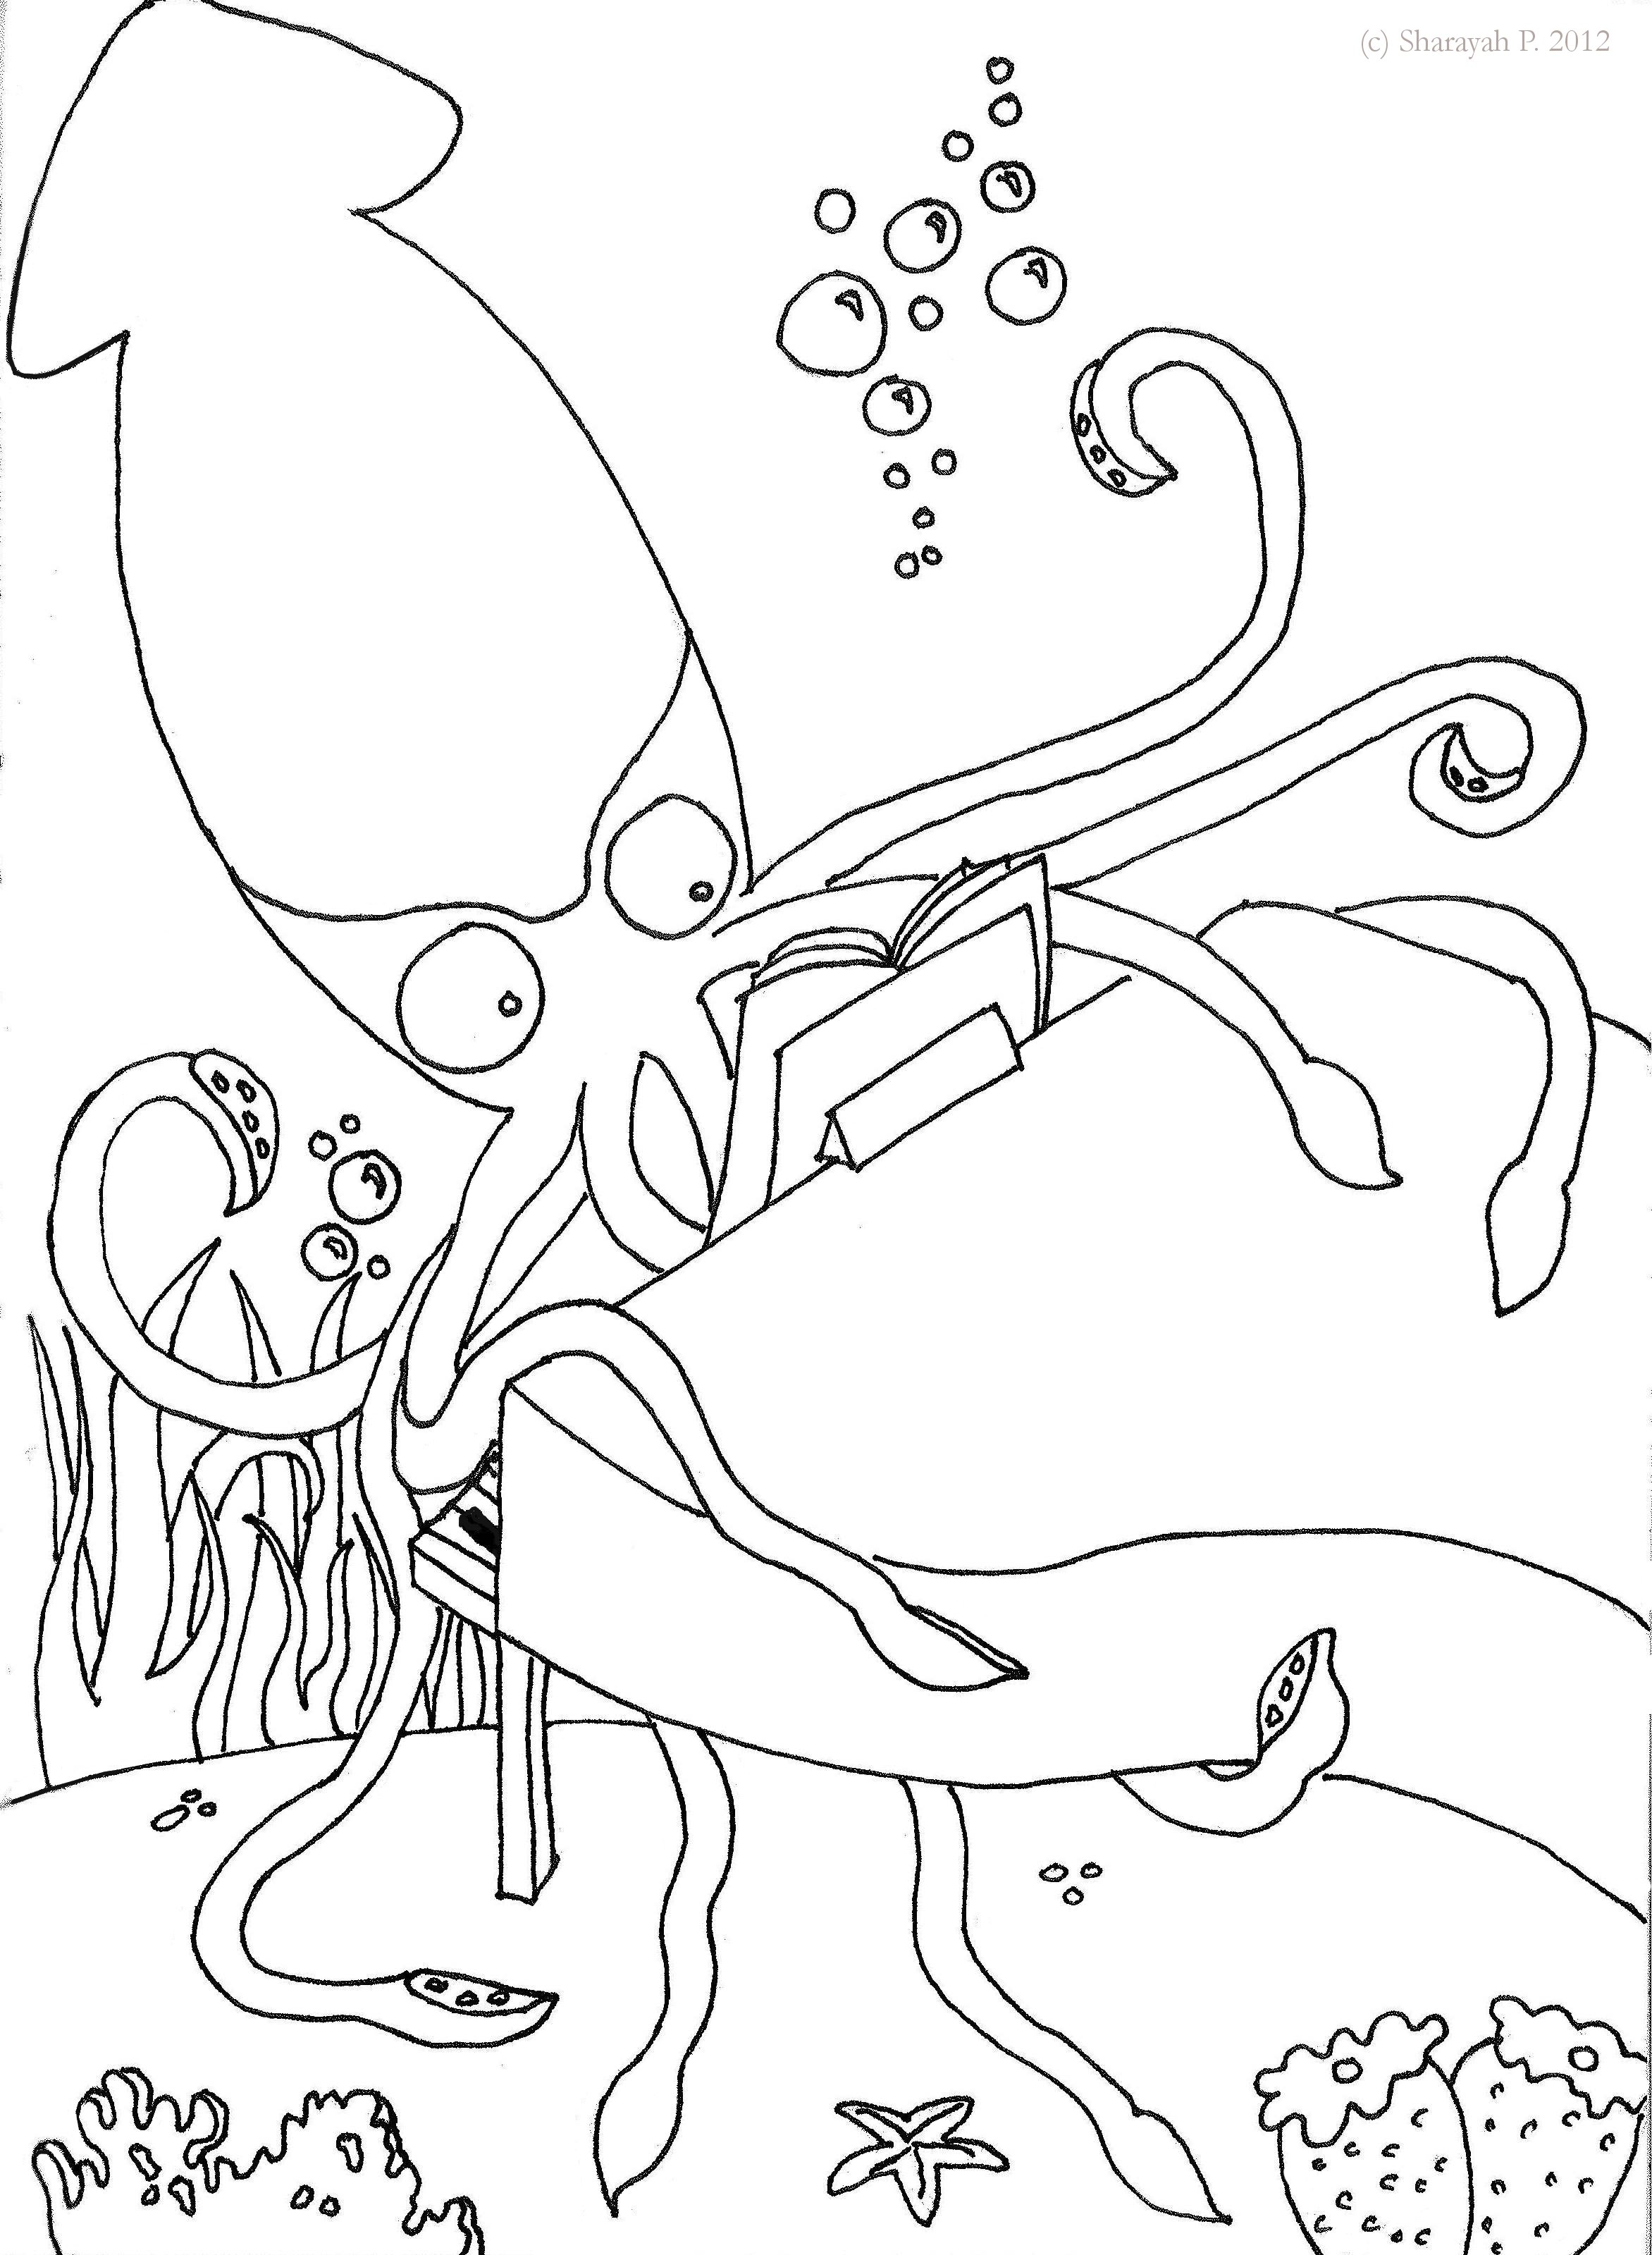 giant squid coloring pages - photo#27